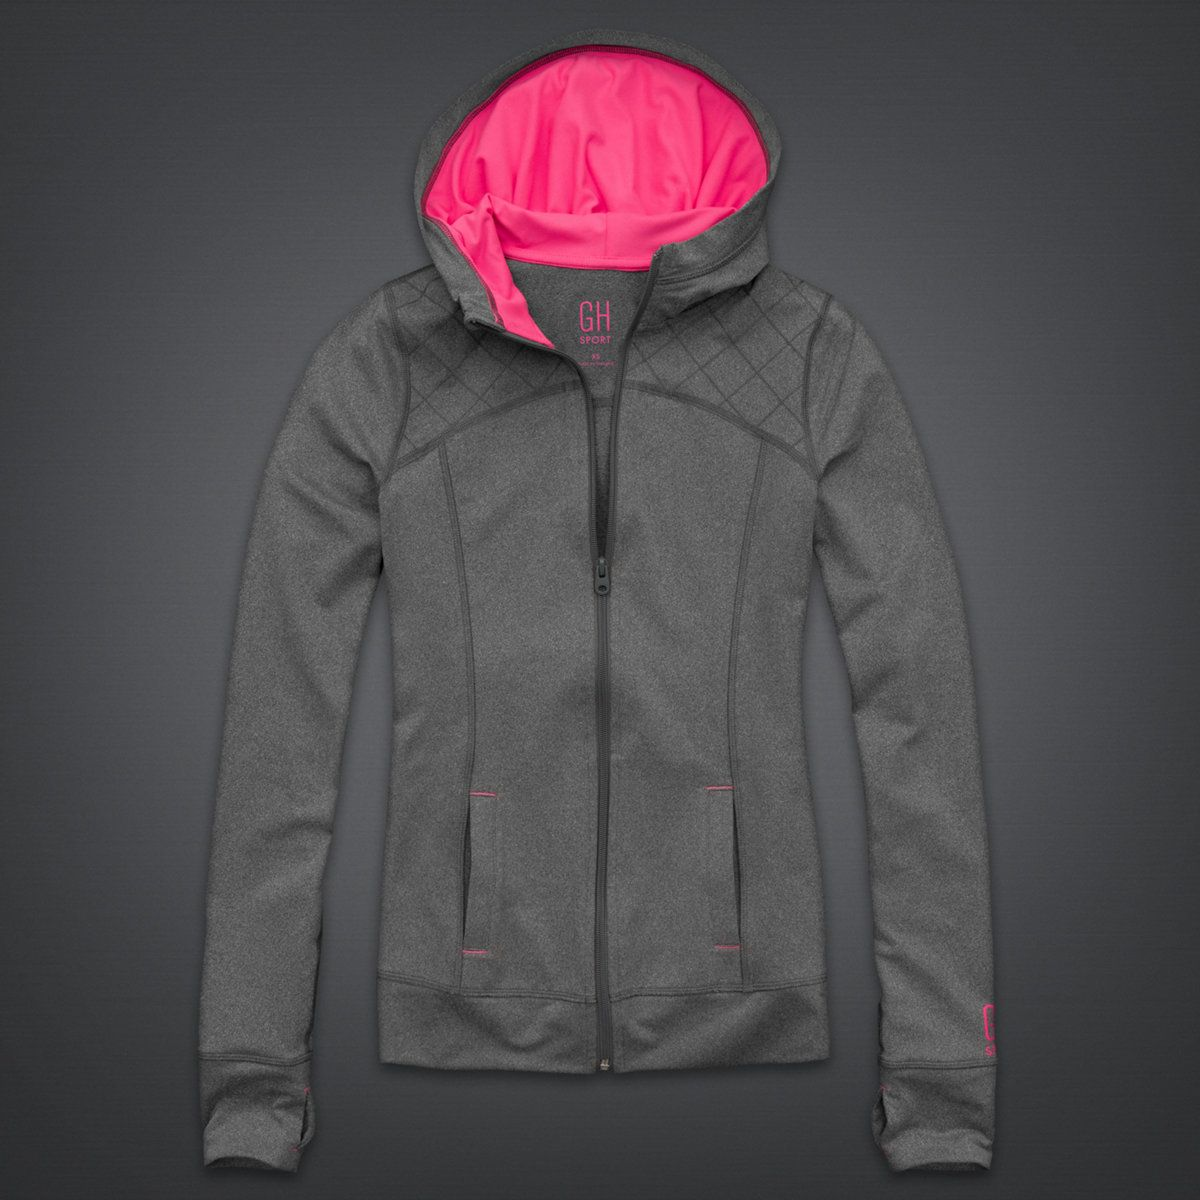 Womens Gh Sport Full-zip Jacket Fashion And Beauty Sports